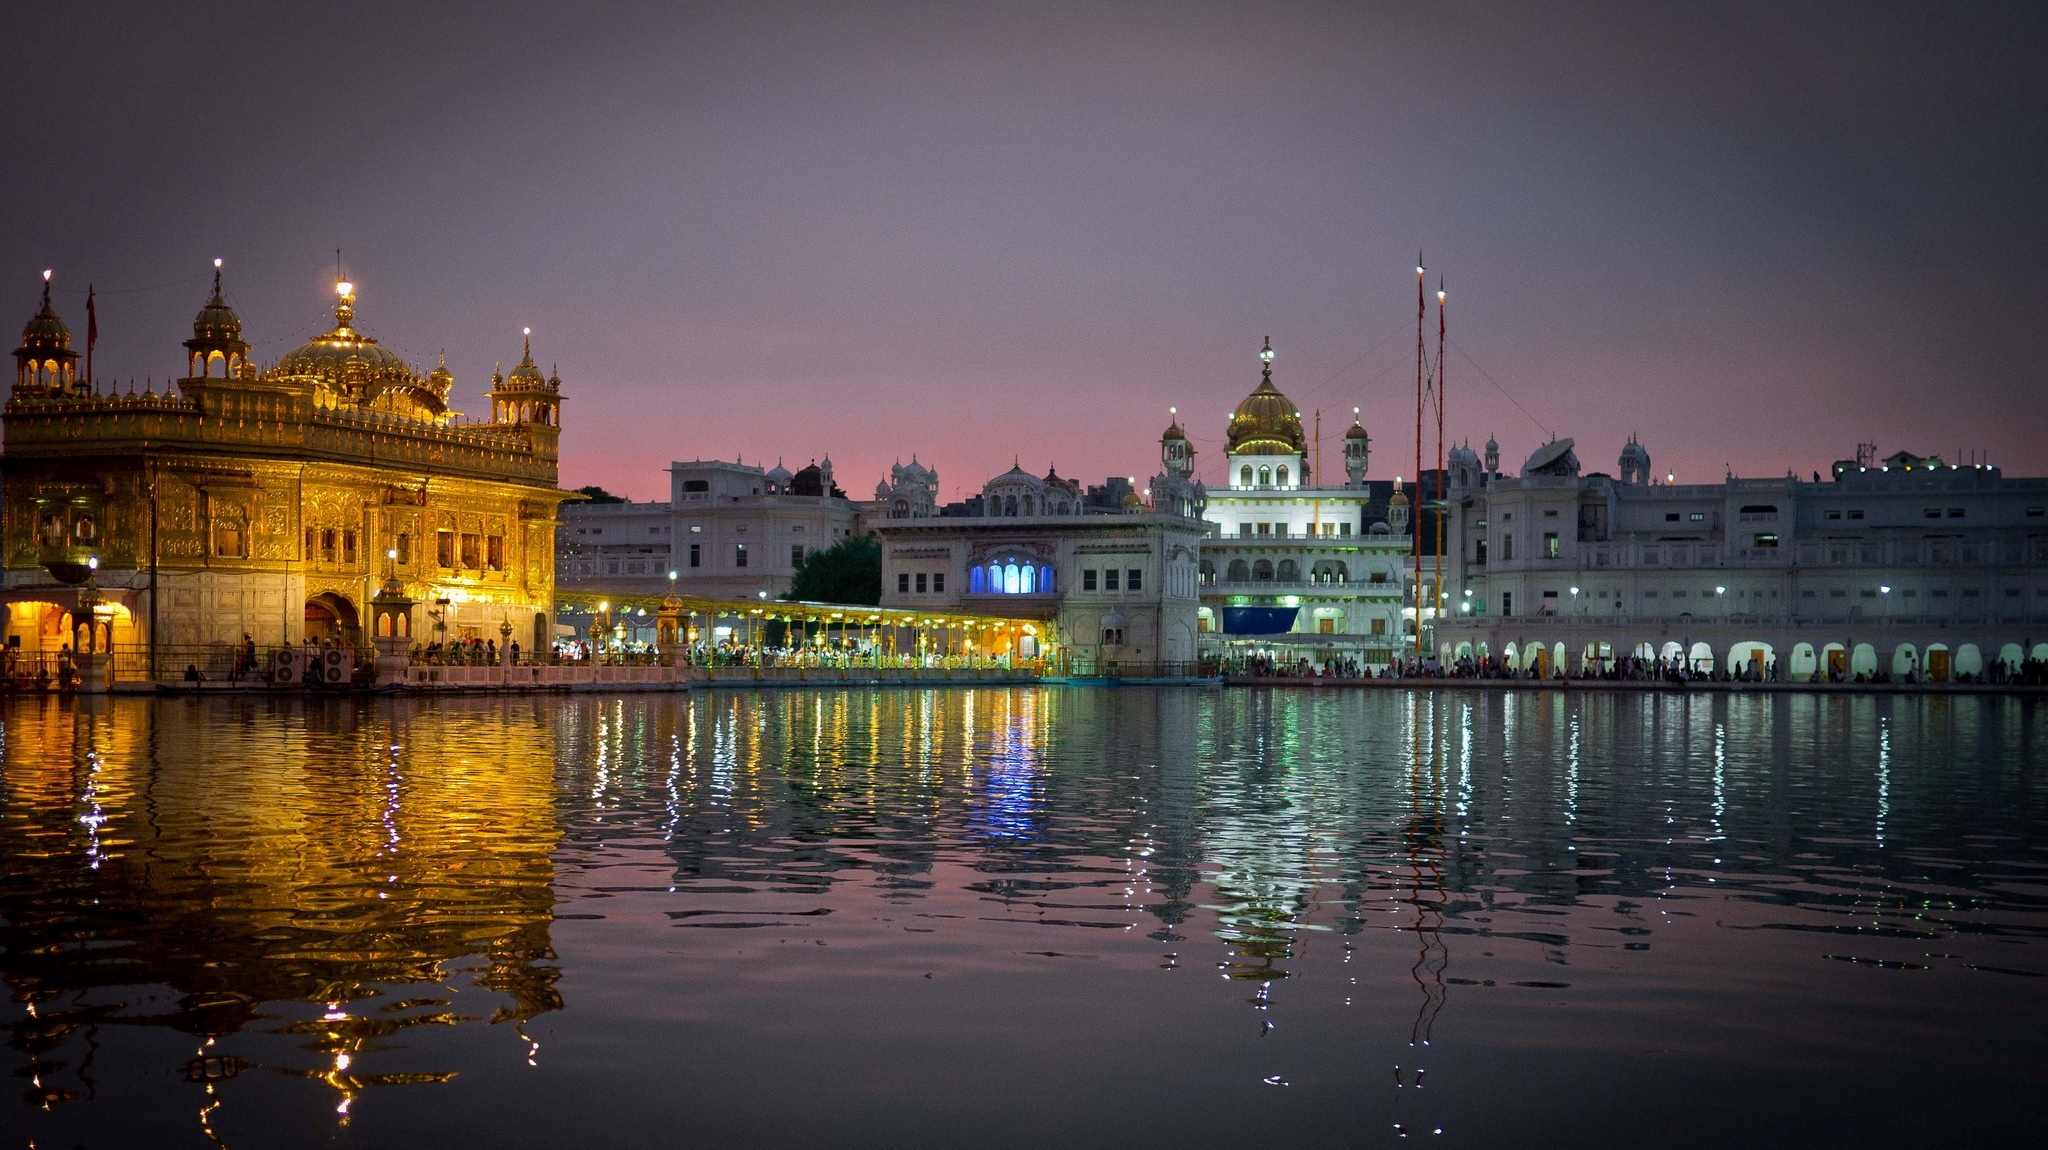 Sikh Wallpapers Hd For Iphone 5 Harmandir Sahib Hd Wallpaper Background Image